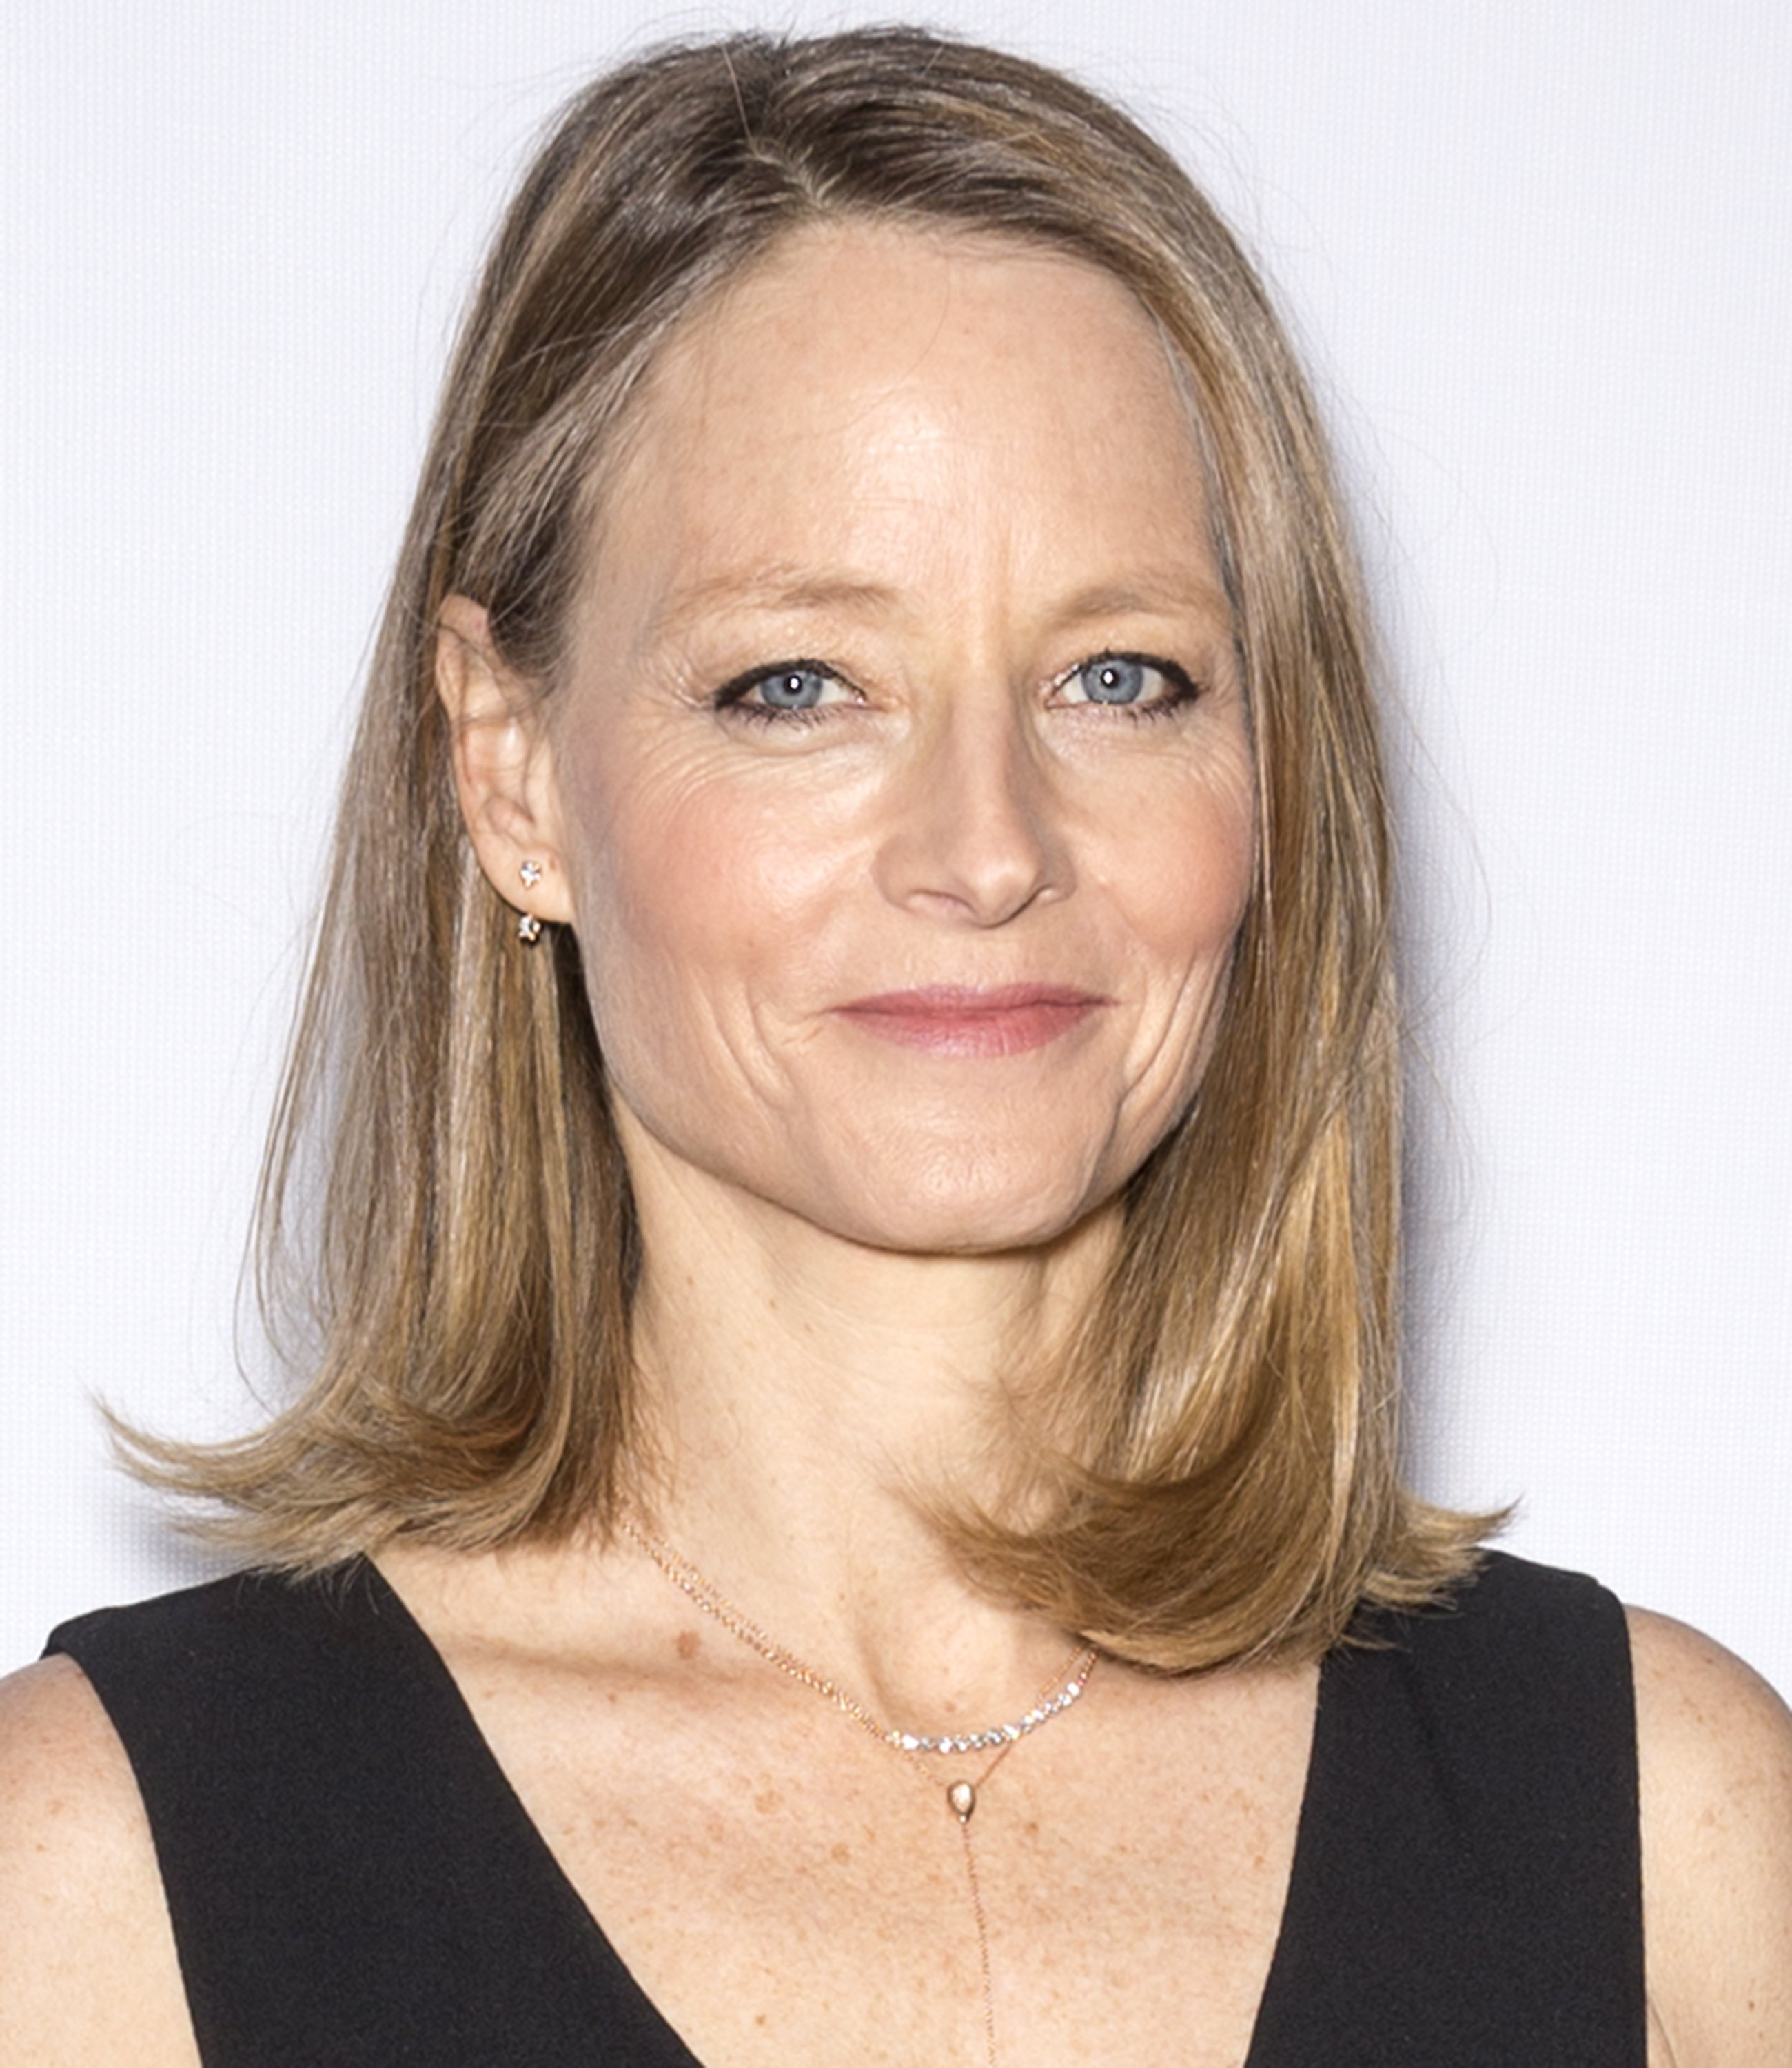 """Jodie Foster at the """"Hotel Artemis"""" premiere in Hollywood, May 2018.   Photo: Shutterstock."""